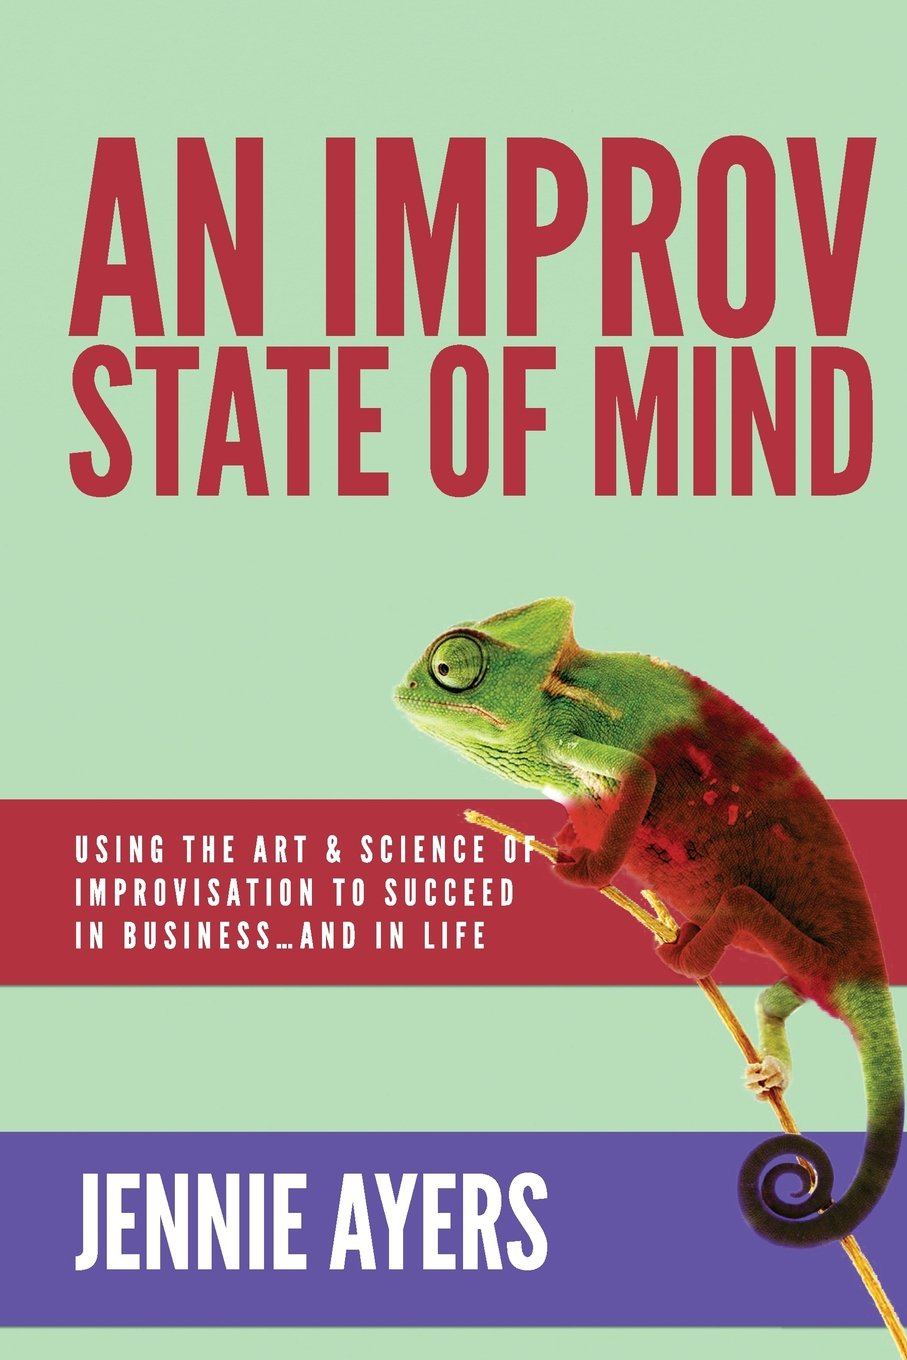 An Improv State of Mind (Jennie Ayers)